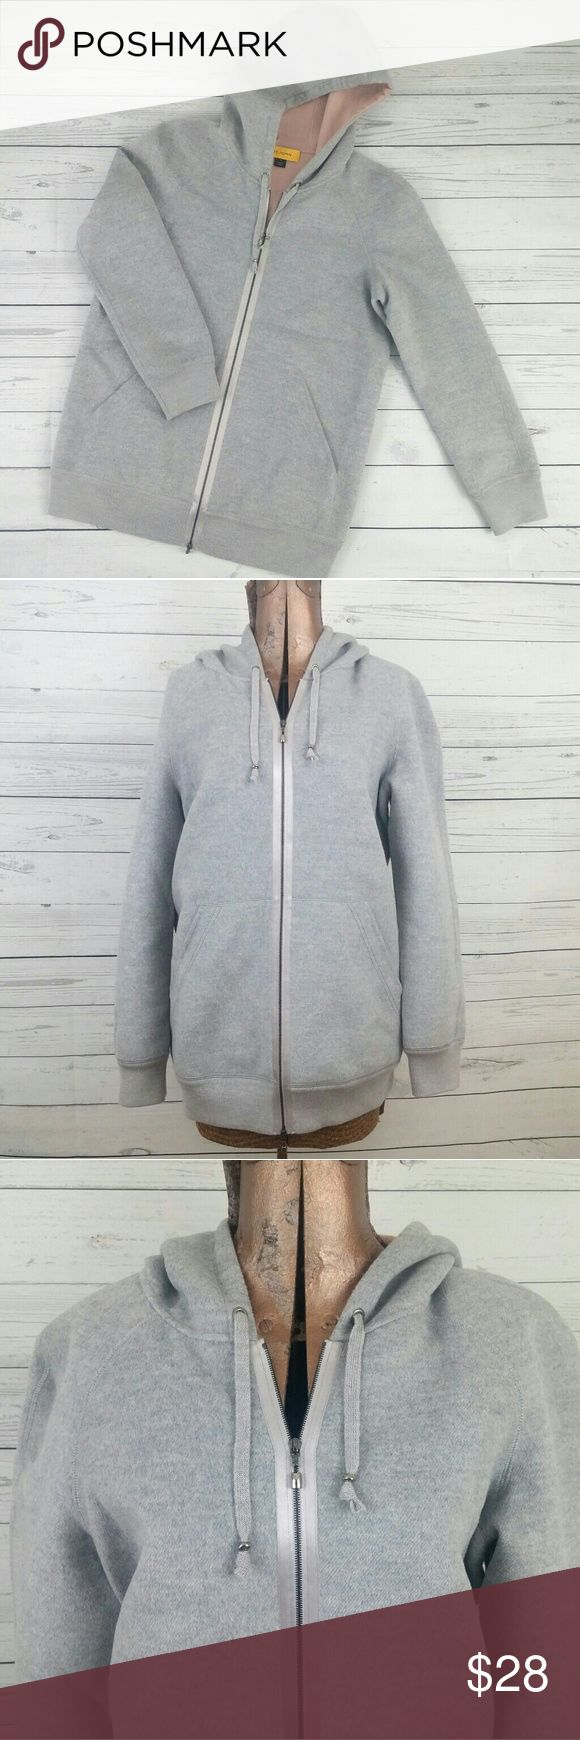 """St. John Sport Designer Wool Blend Zip Hoodie Heavy weight, two front pockets. Soft interior lining. Soft almost faux fur material outside. Double zipper for multi-way wear. Longer fit- I'm 5'2"""" and this comes down over my hips and butt so it could be worn with leggings. Zoom in for details. Pic 6 is of the back of the hood. St. John Tops Sweatshirts & Hoodies"""